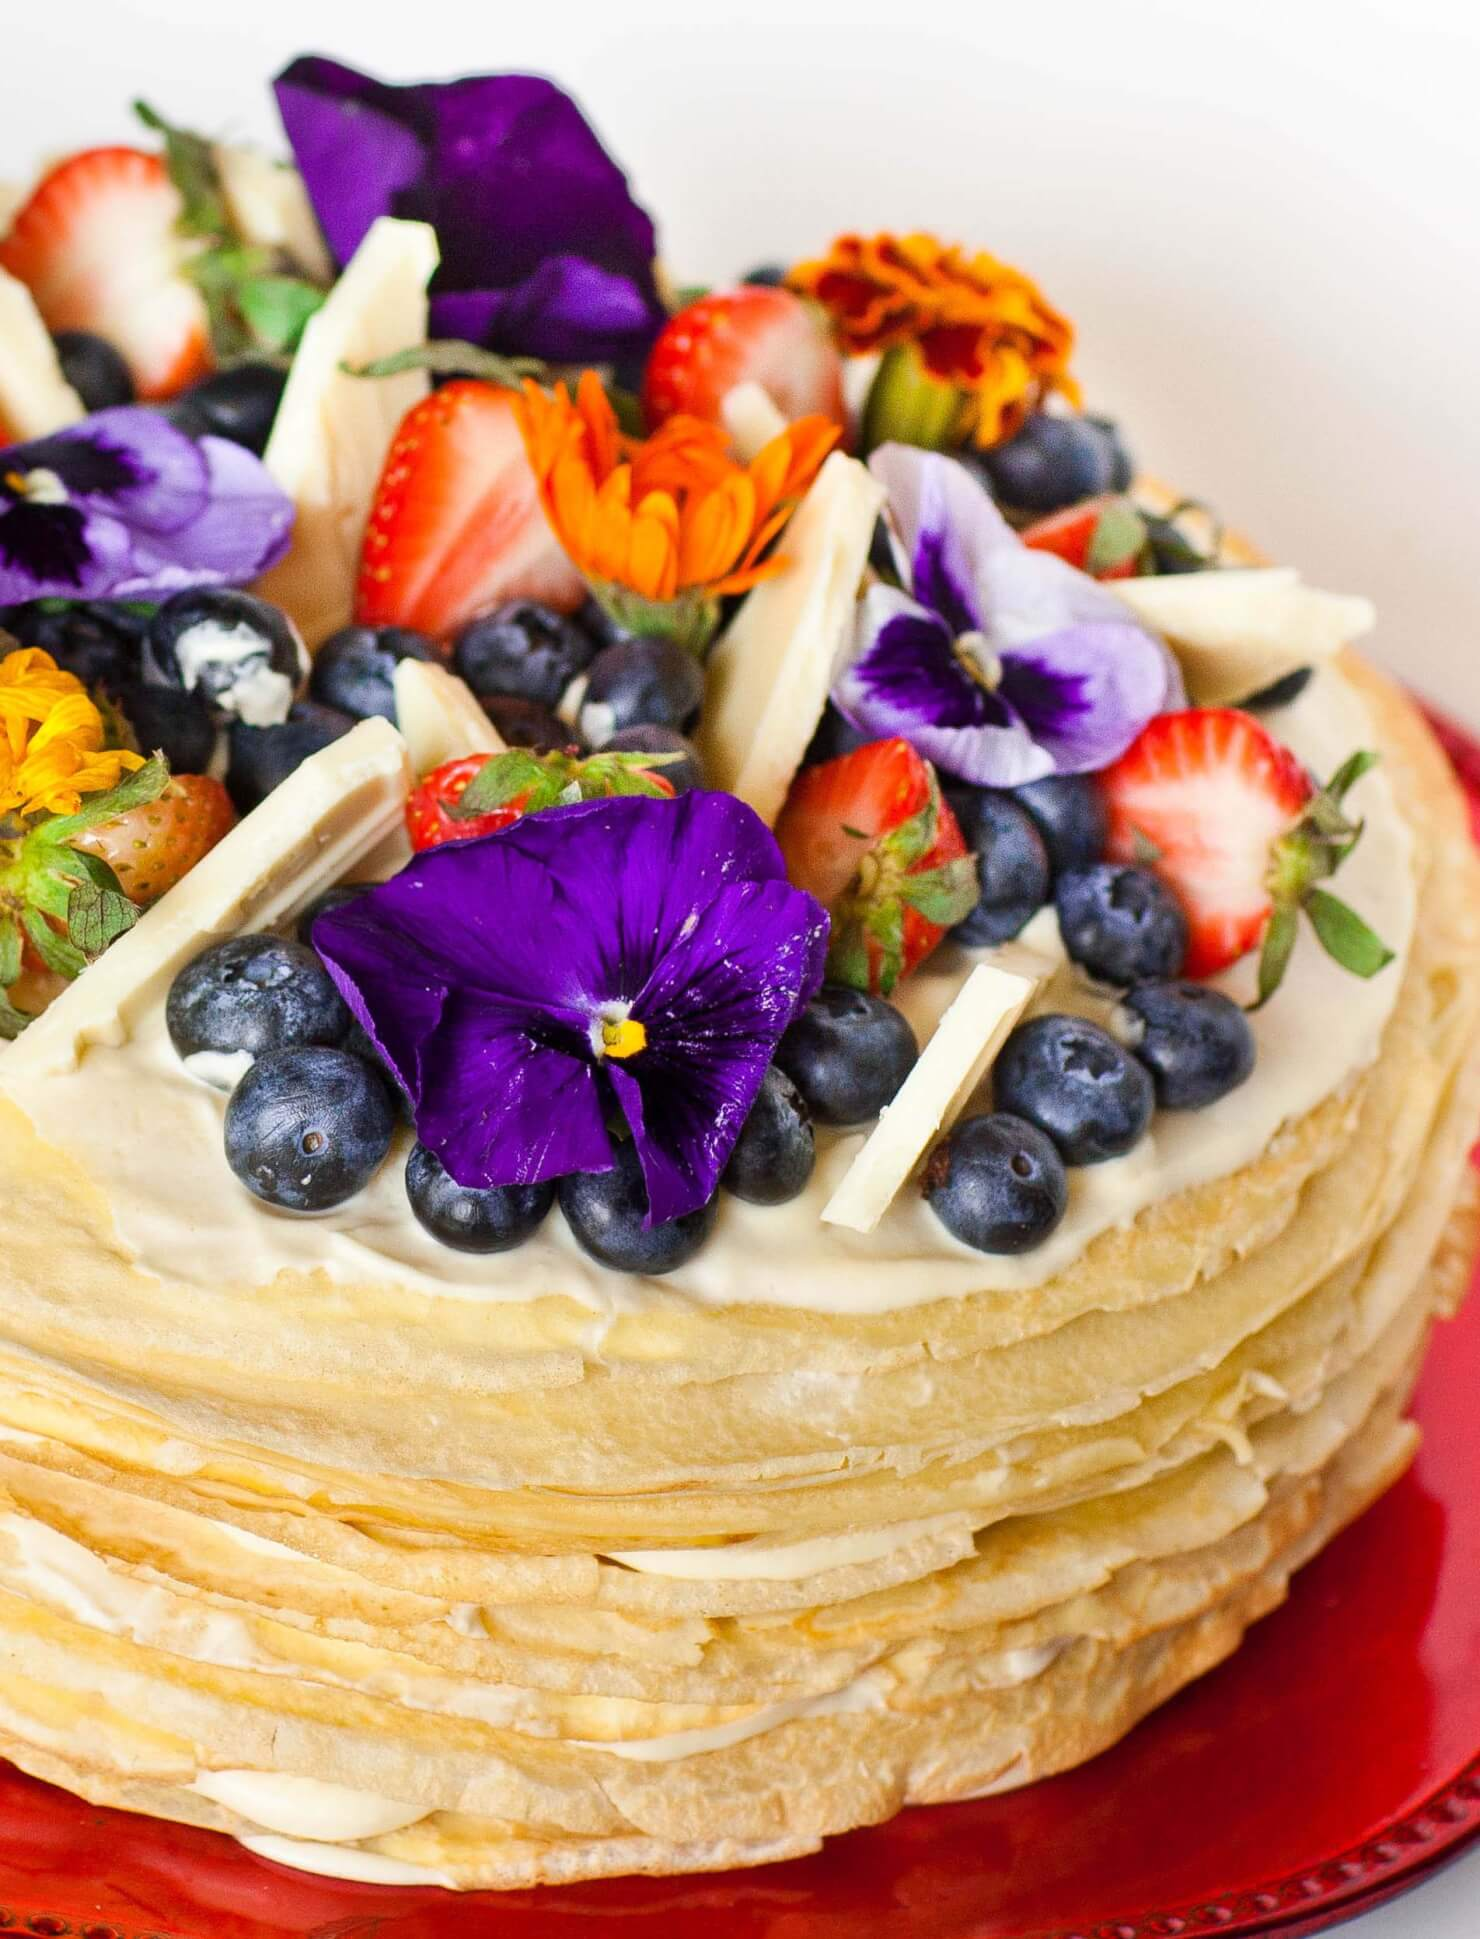 white chocolate crepe cake with edible flowers and berries